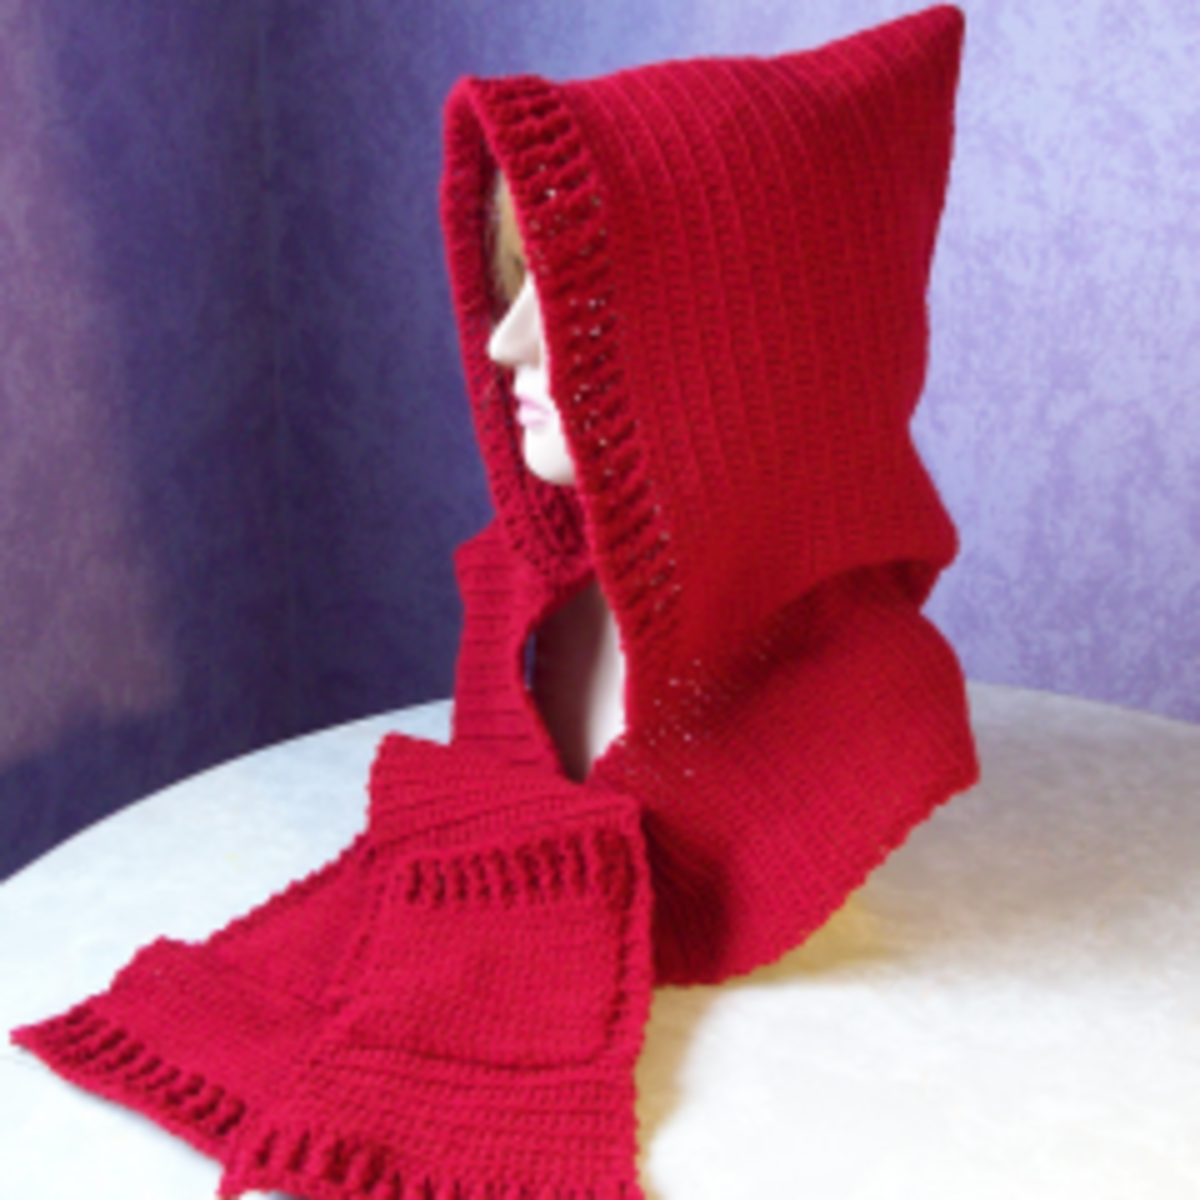 Free Crochet Patterns for Hooded Scarves